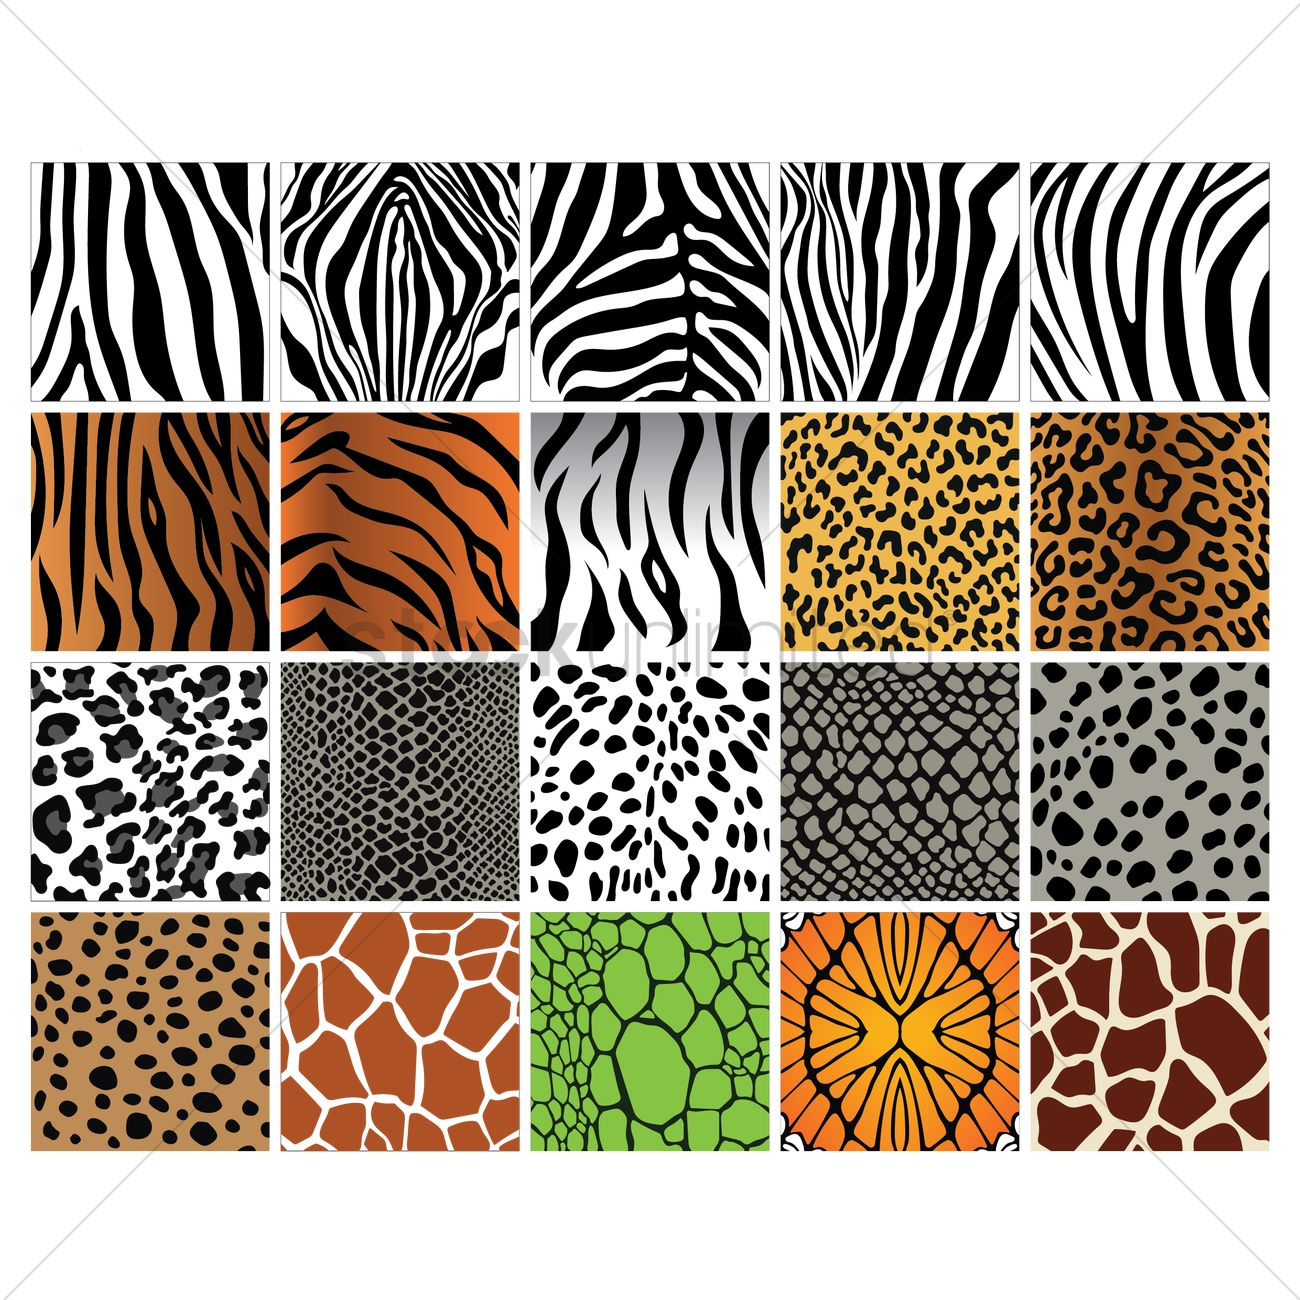 Uncategorized Animal Pictures To Print set of animal print backgrounds vector image 1621700 graphic